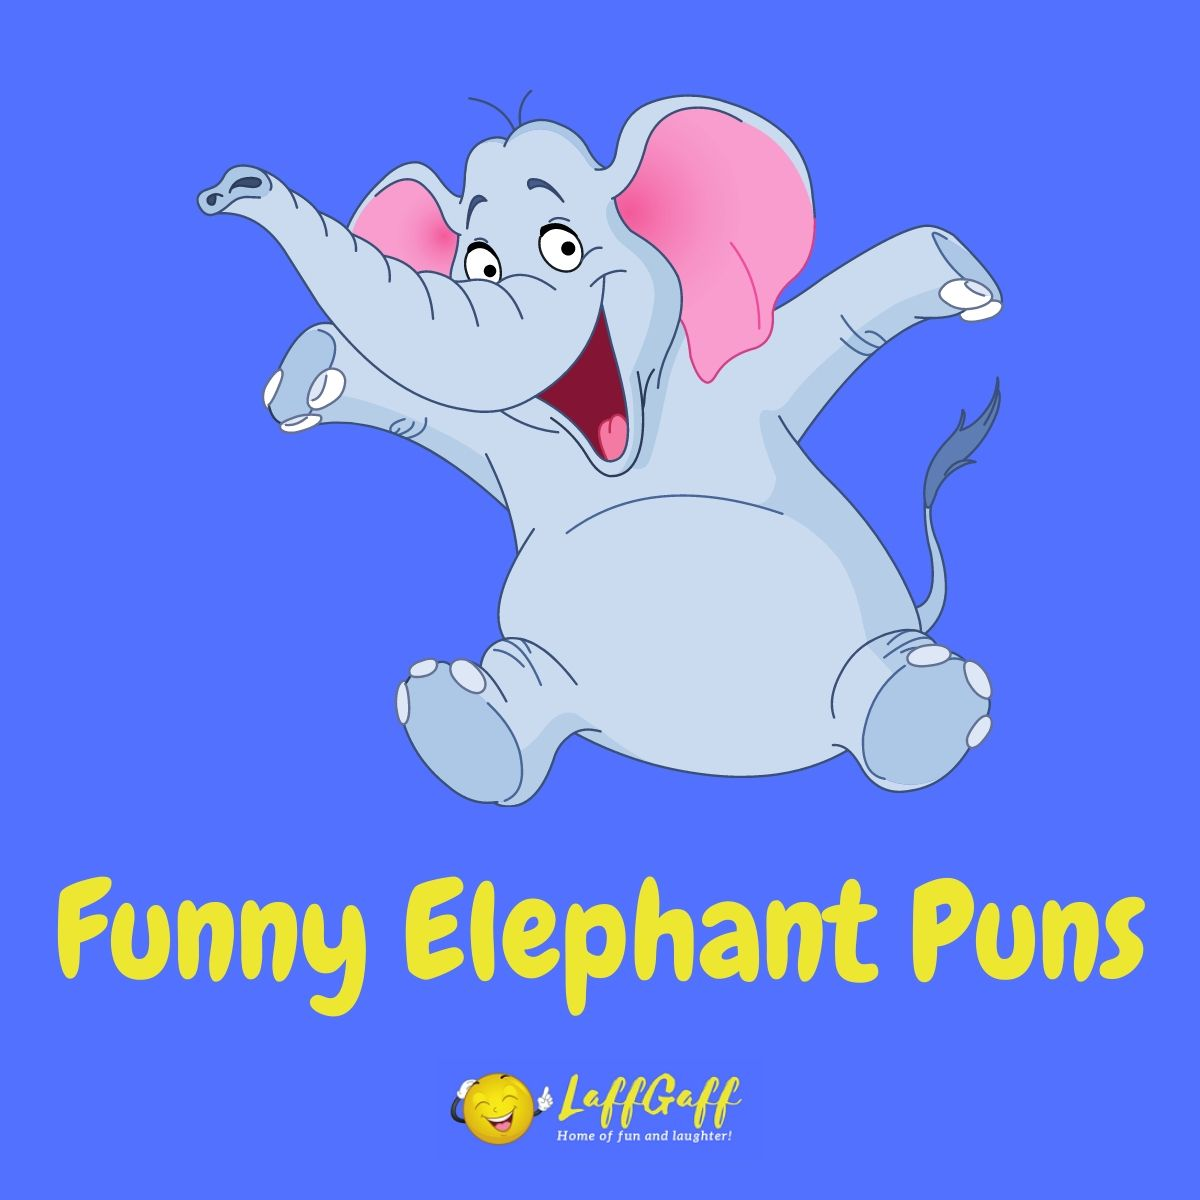 Featured image for a page of funny elephant puns and jokes.